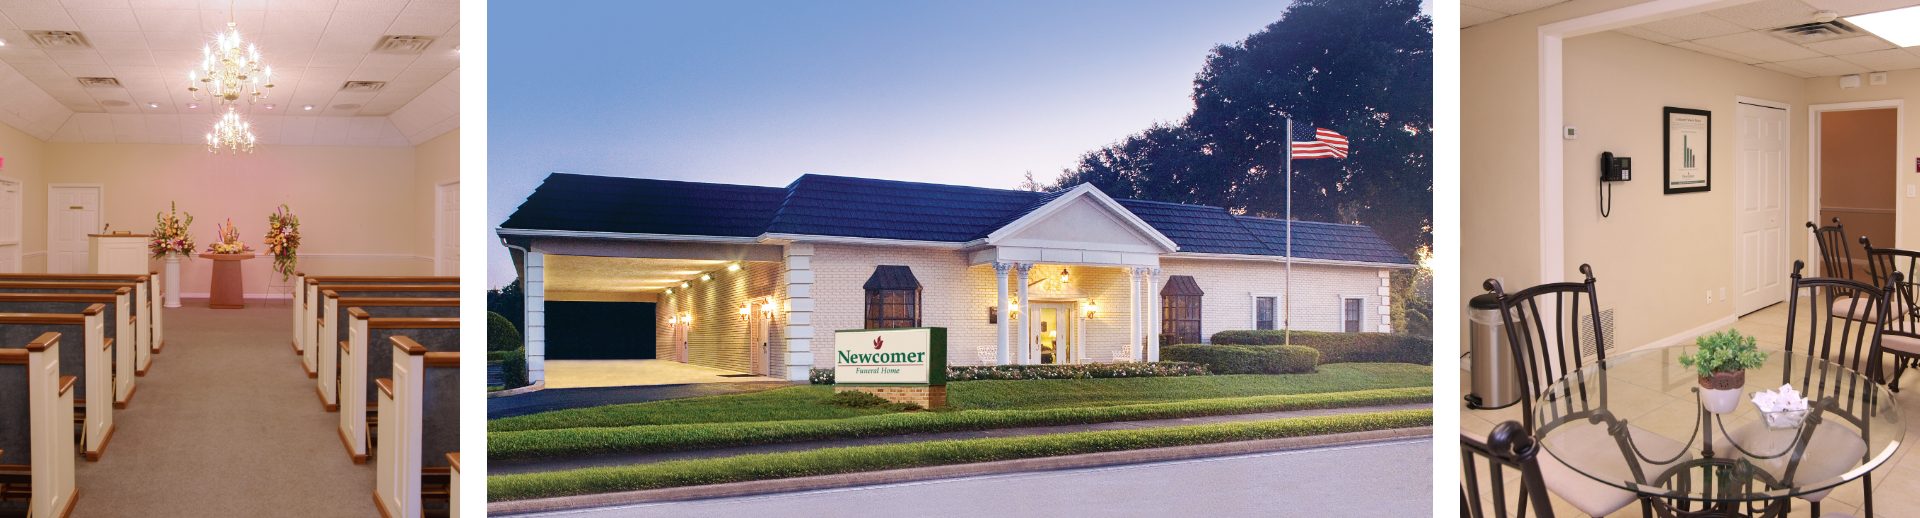 Newcomer Funeral Homes Locations And Staff